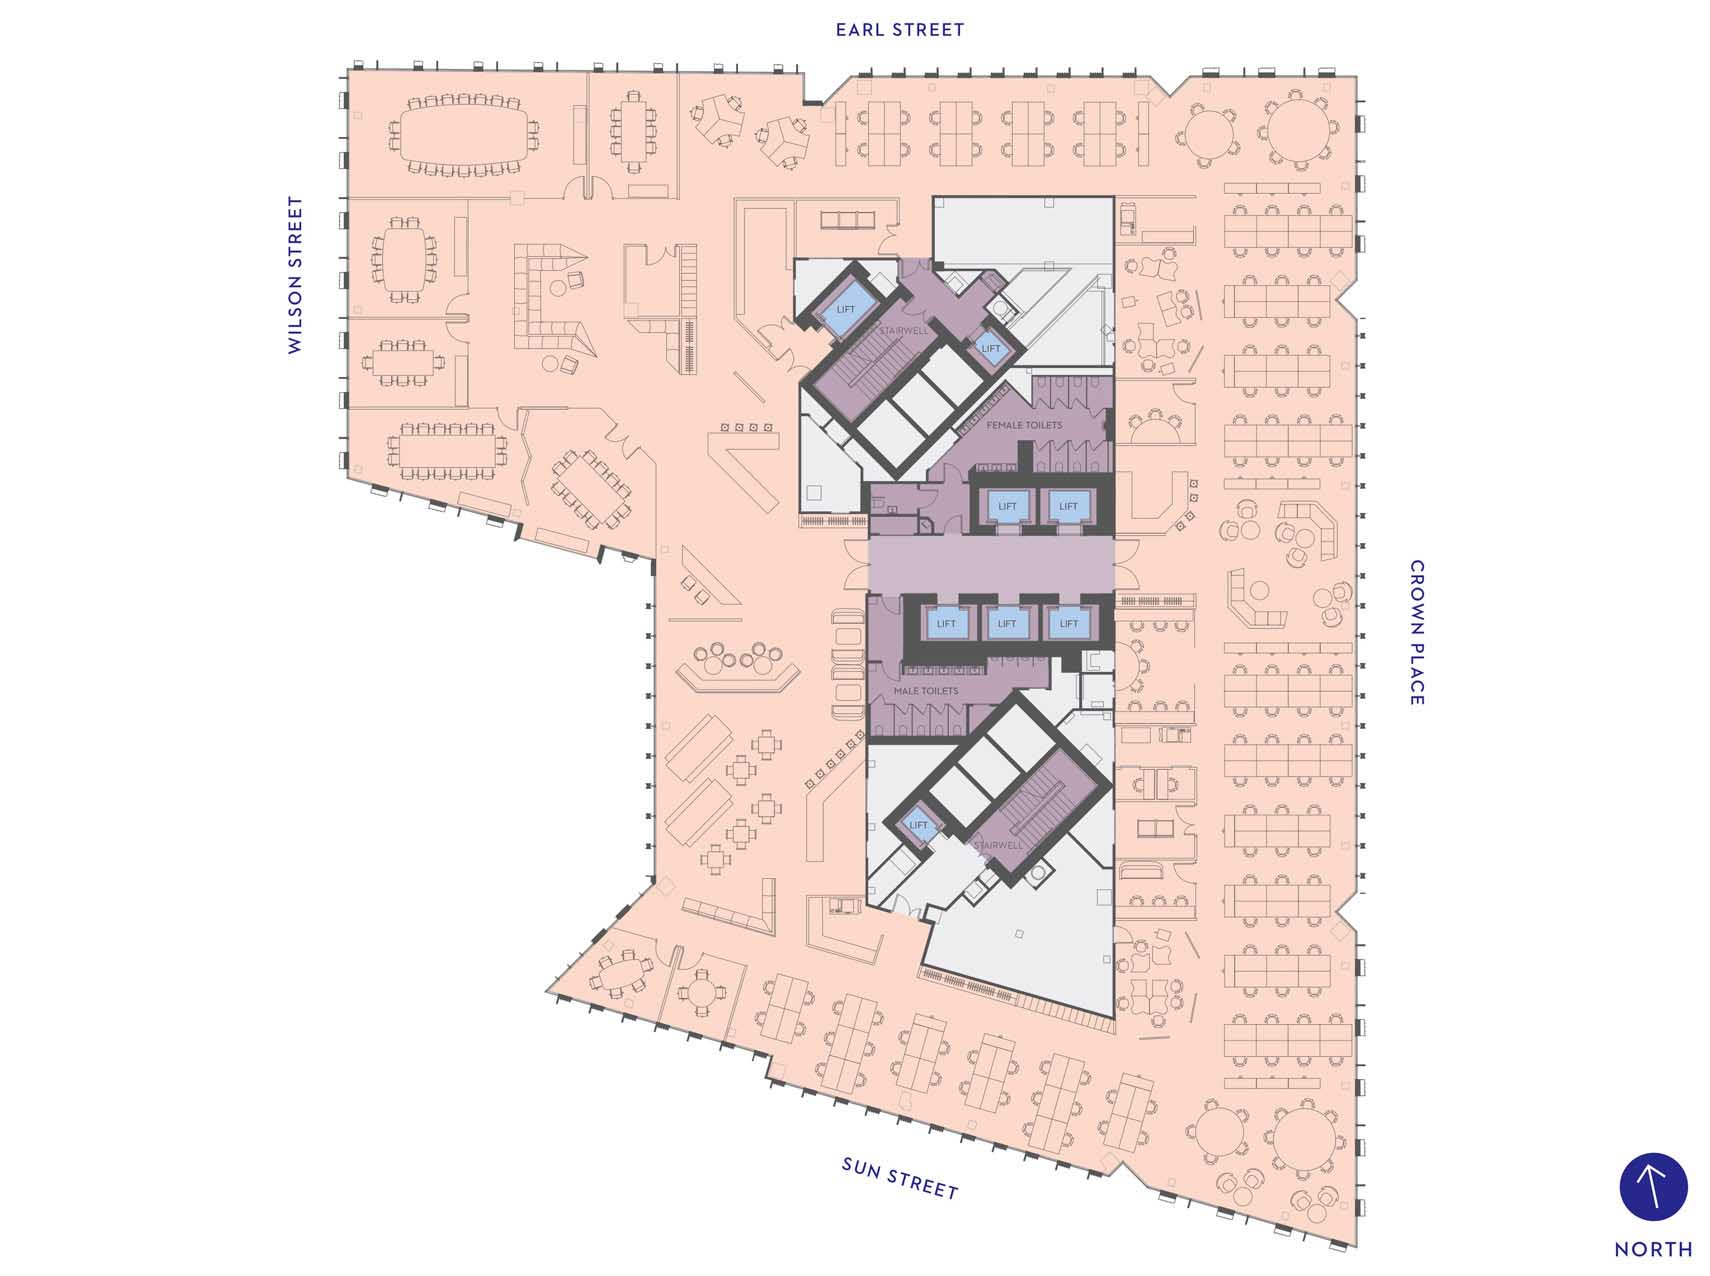 One Crown Place - Commercial LEGAL SPACE PLAN